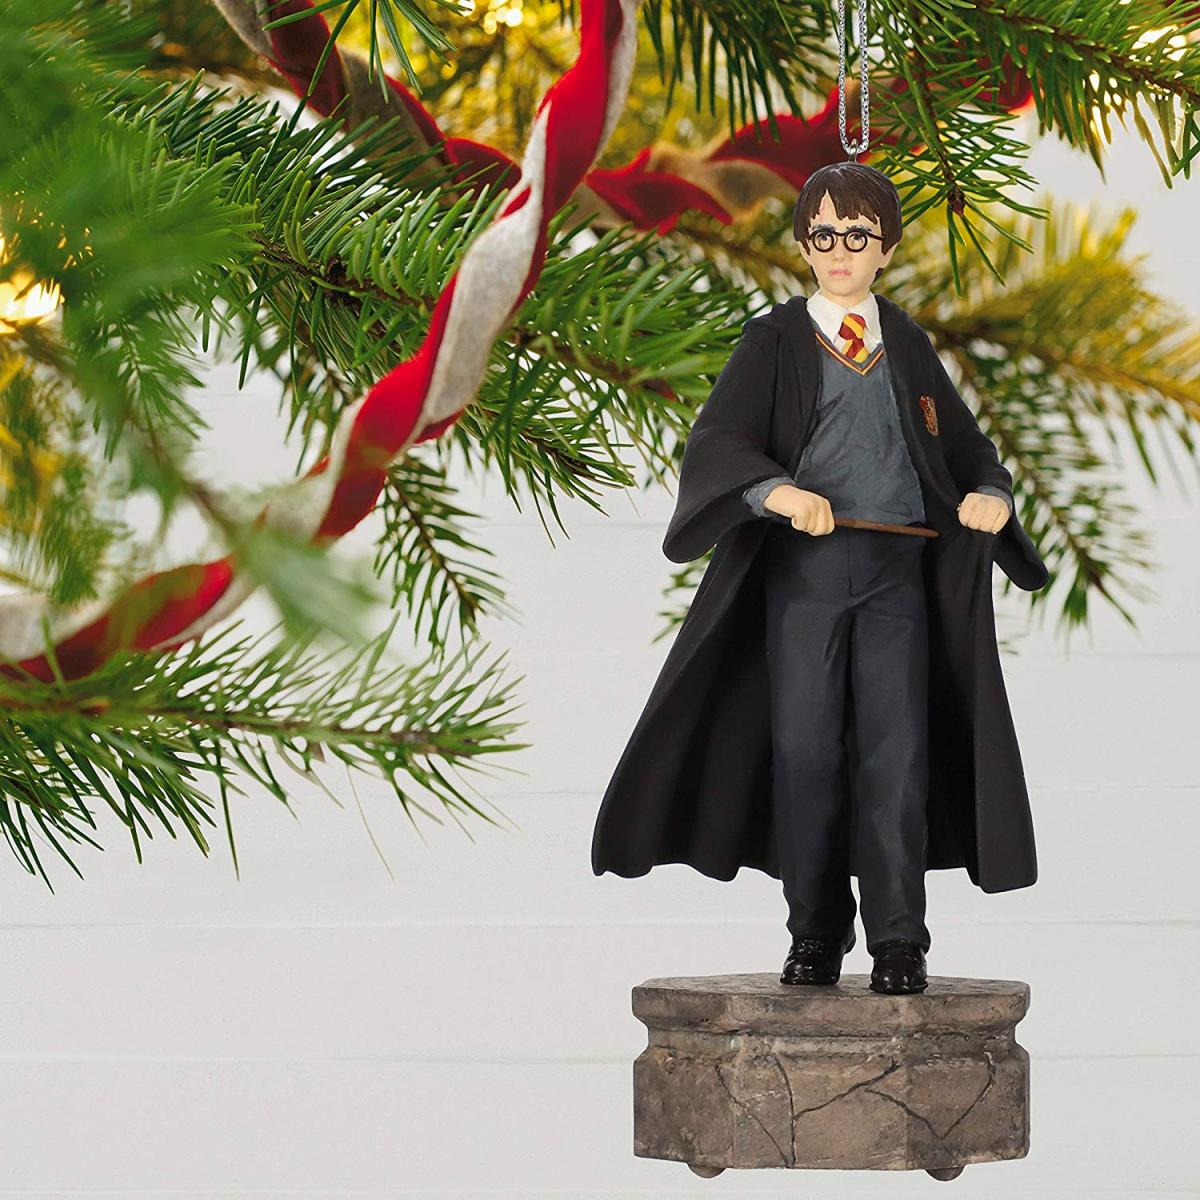 Harry Potter Christmas Tree Topper - Harry Potter Christmas Ornament